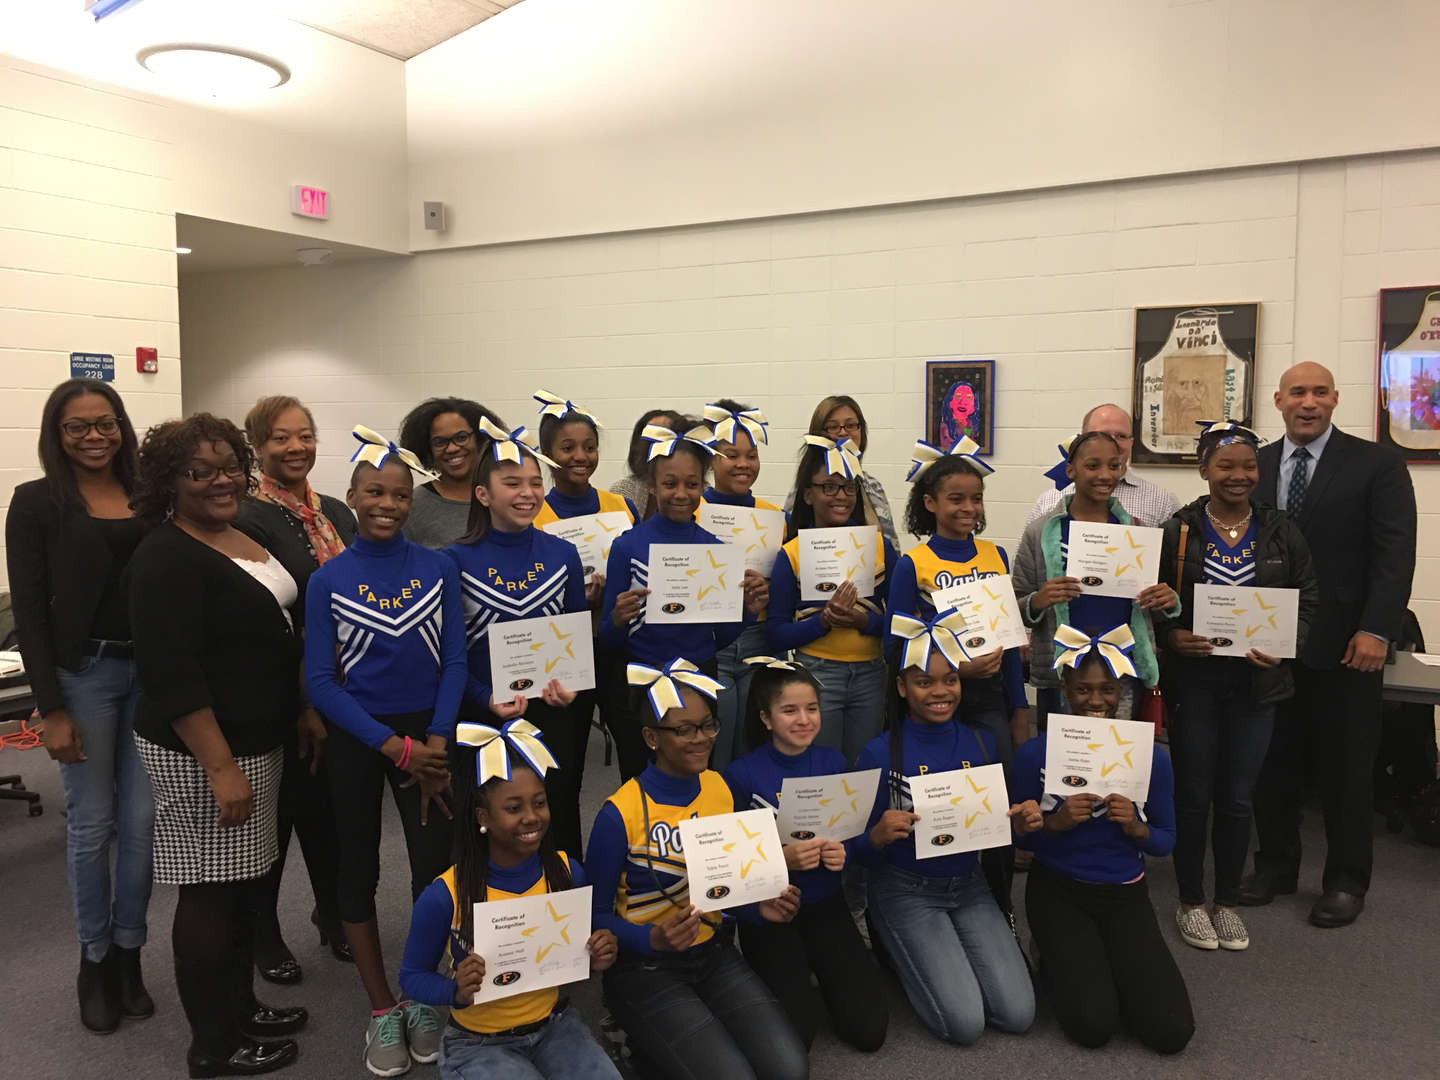 The Board of Education recognized Parker cheerleaders who participated in the Walk of Hope for Cancer.